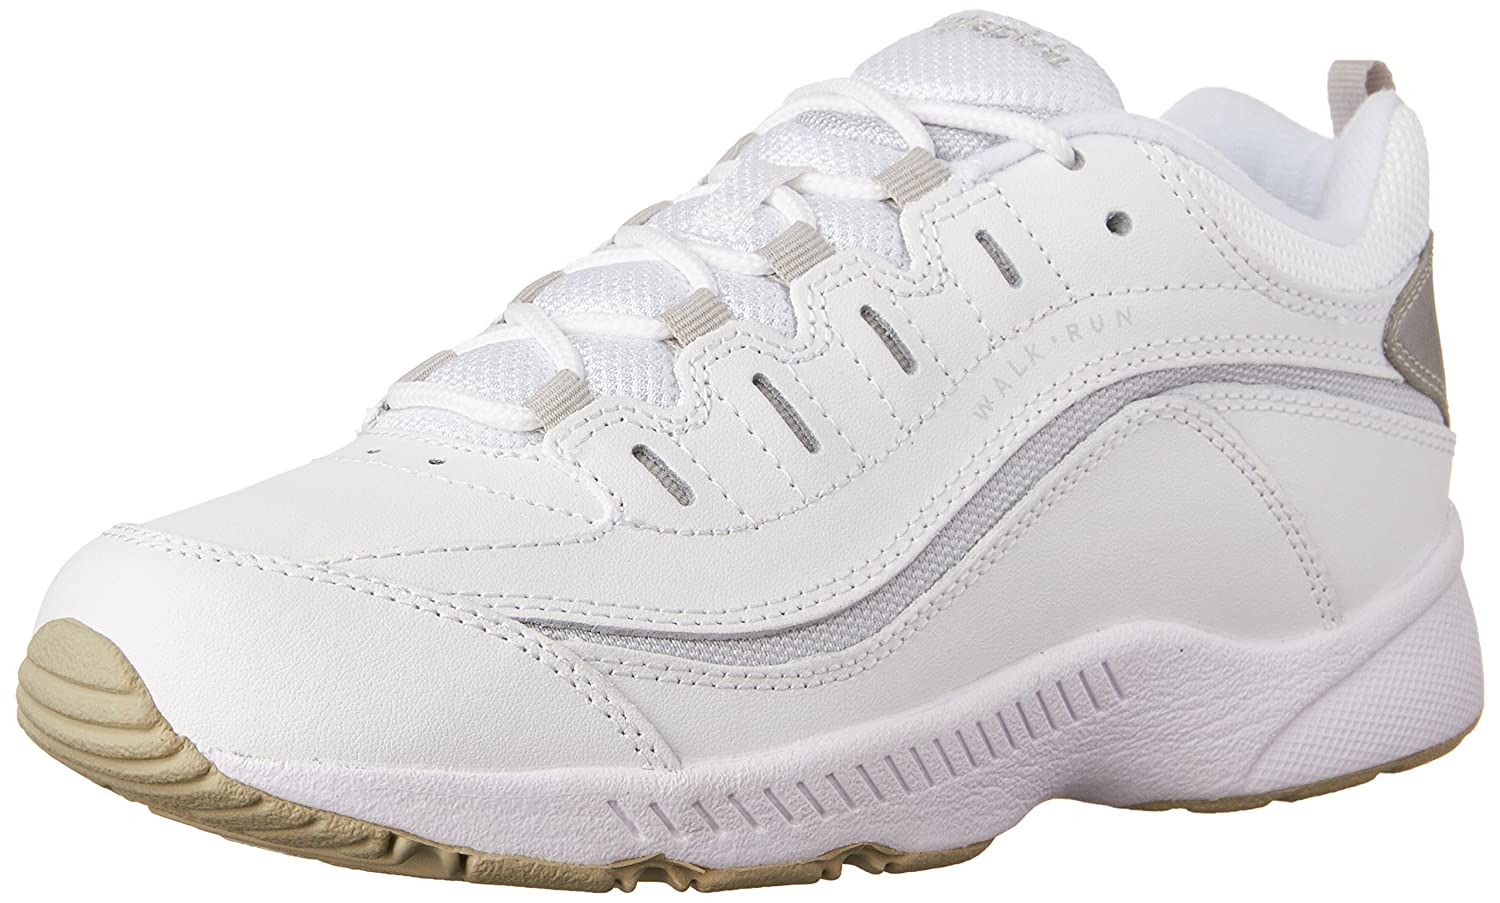 Easy Spirit Women's Romy Walking Shoe B000F5VEF0 9.5 B(M) US|White/ Light Grey